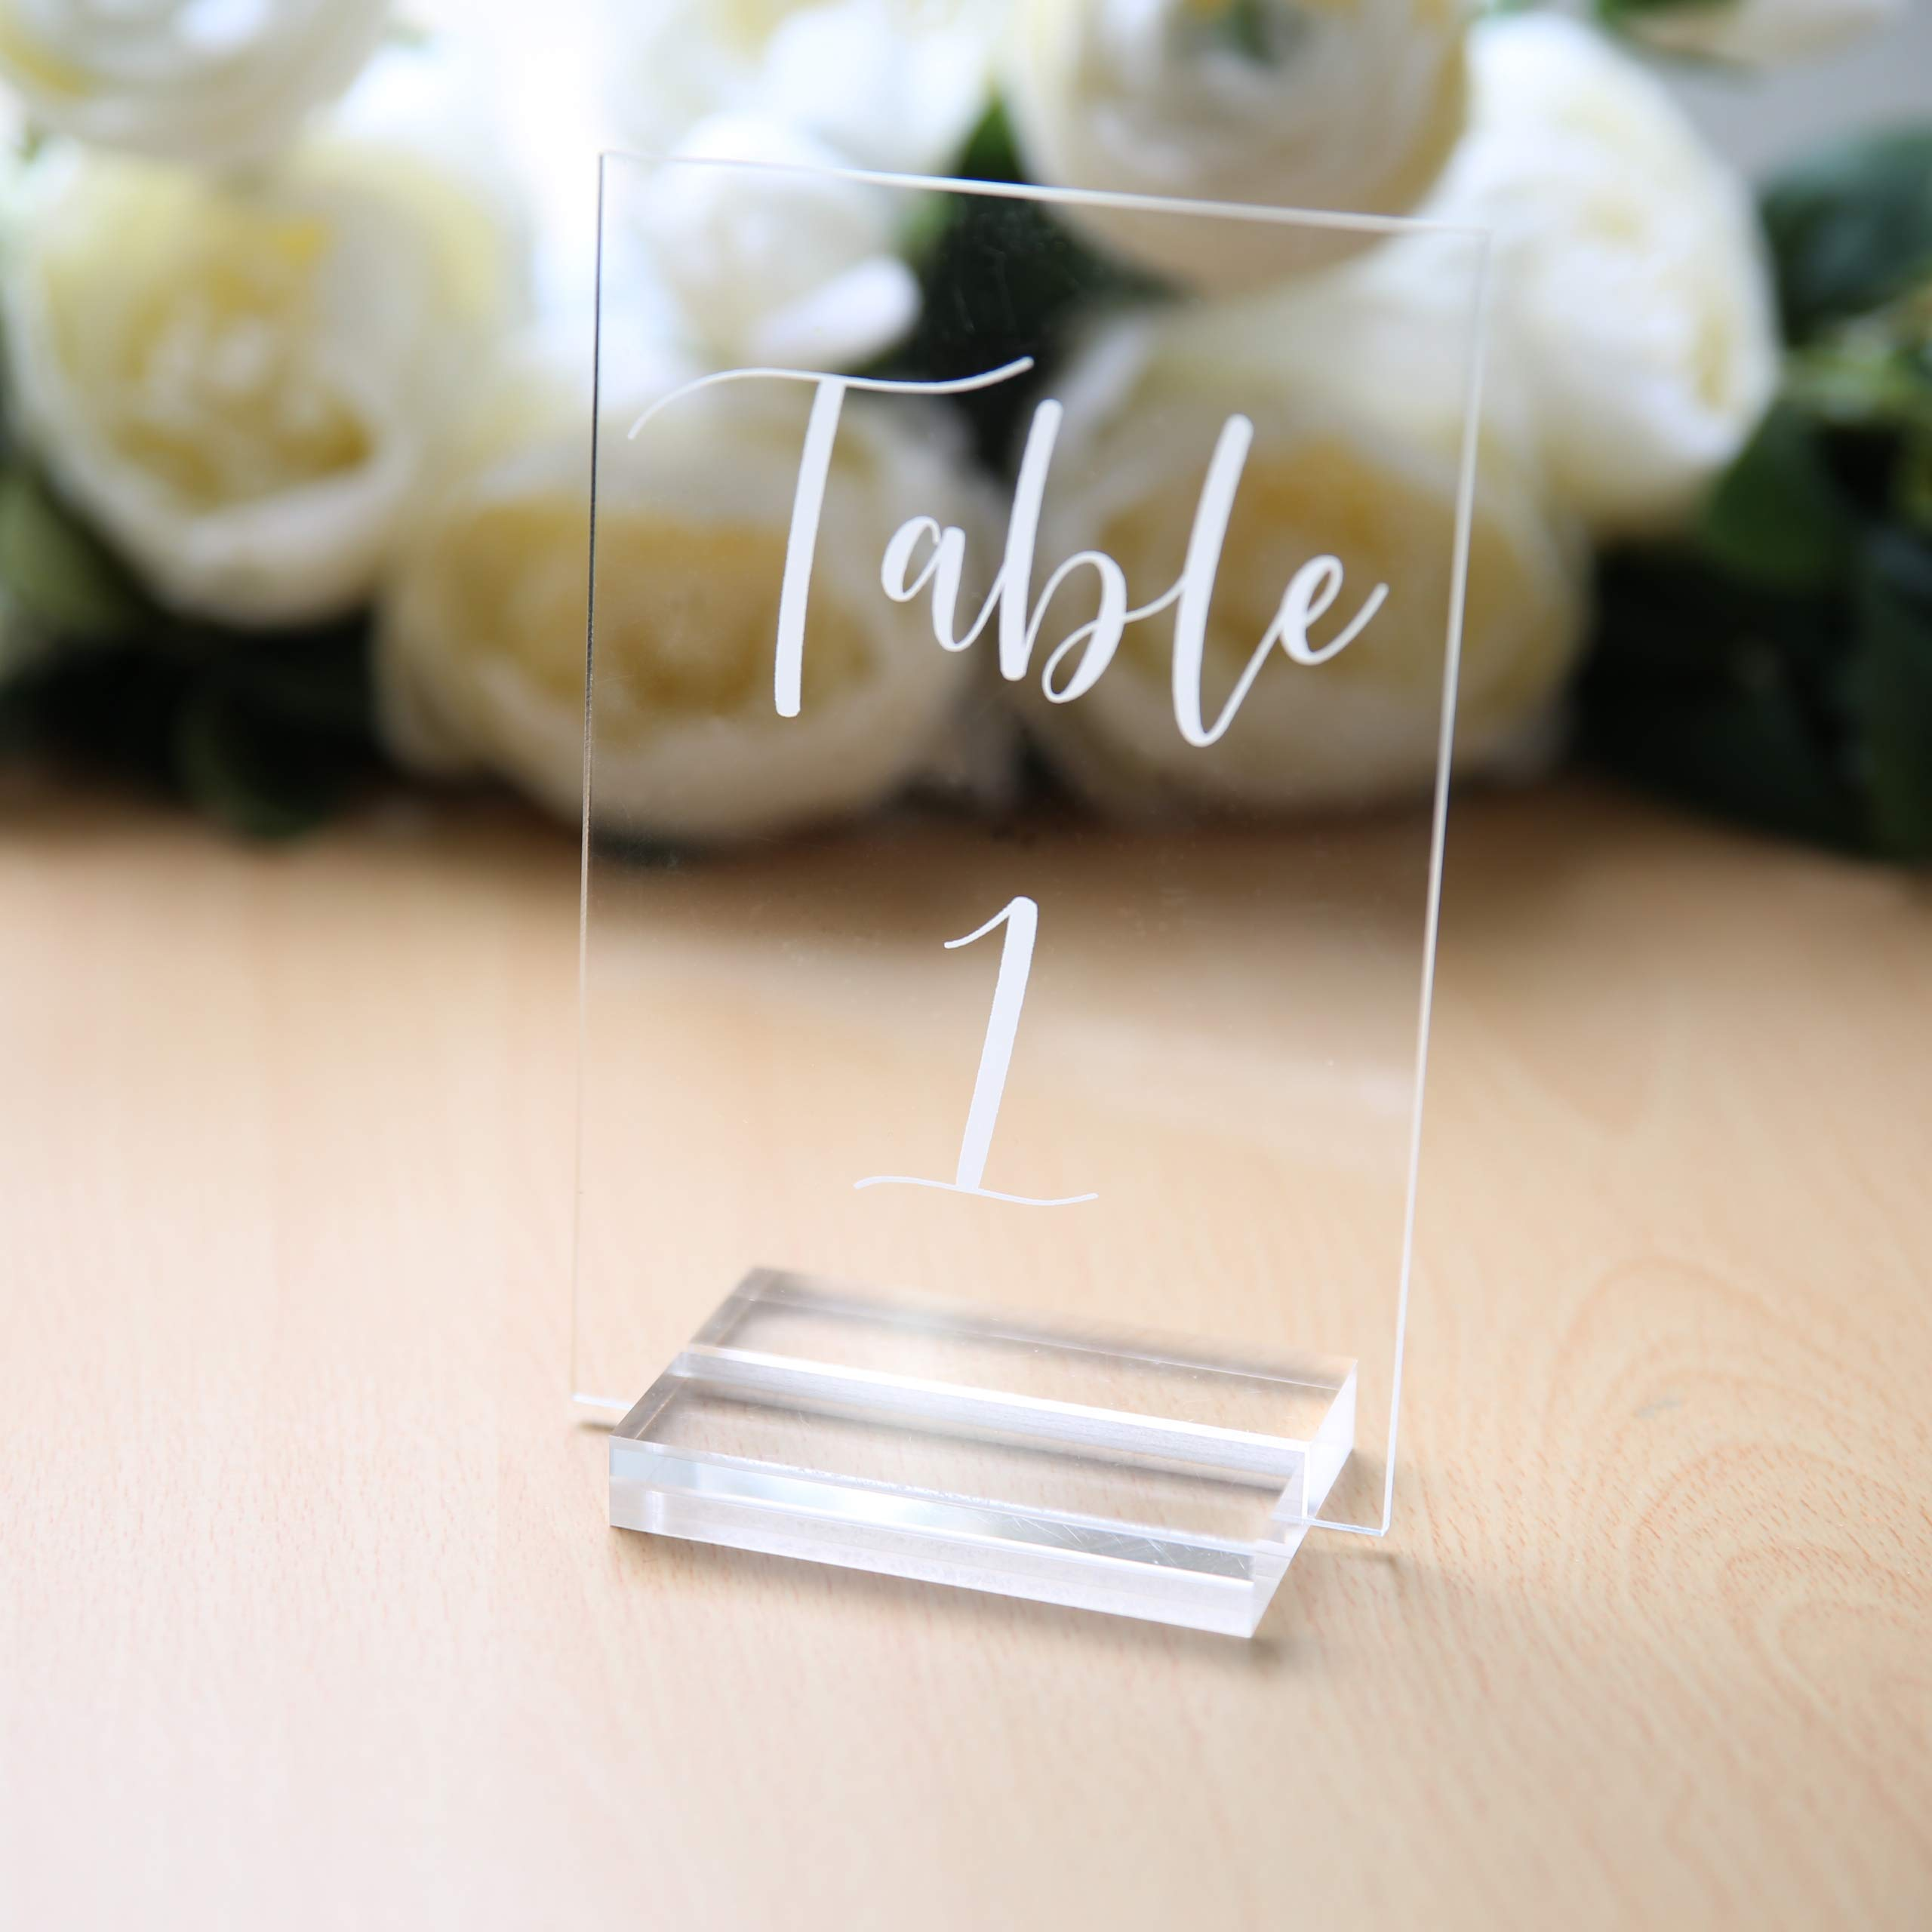 UNIQOOO 3'' Large Clear Acrylic Sign Holders | Wedding Sign Holders |Table Numbers Display Stands | Acrylic Place Card Slot Stand, Perfect for Retail Shop Cafe Events, Set of 20 by UNIQOOO (Image #4)